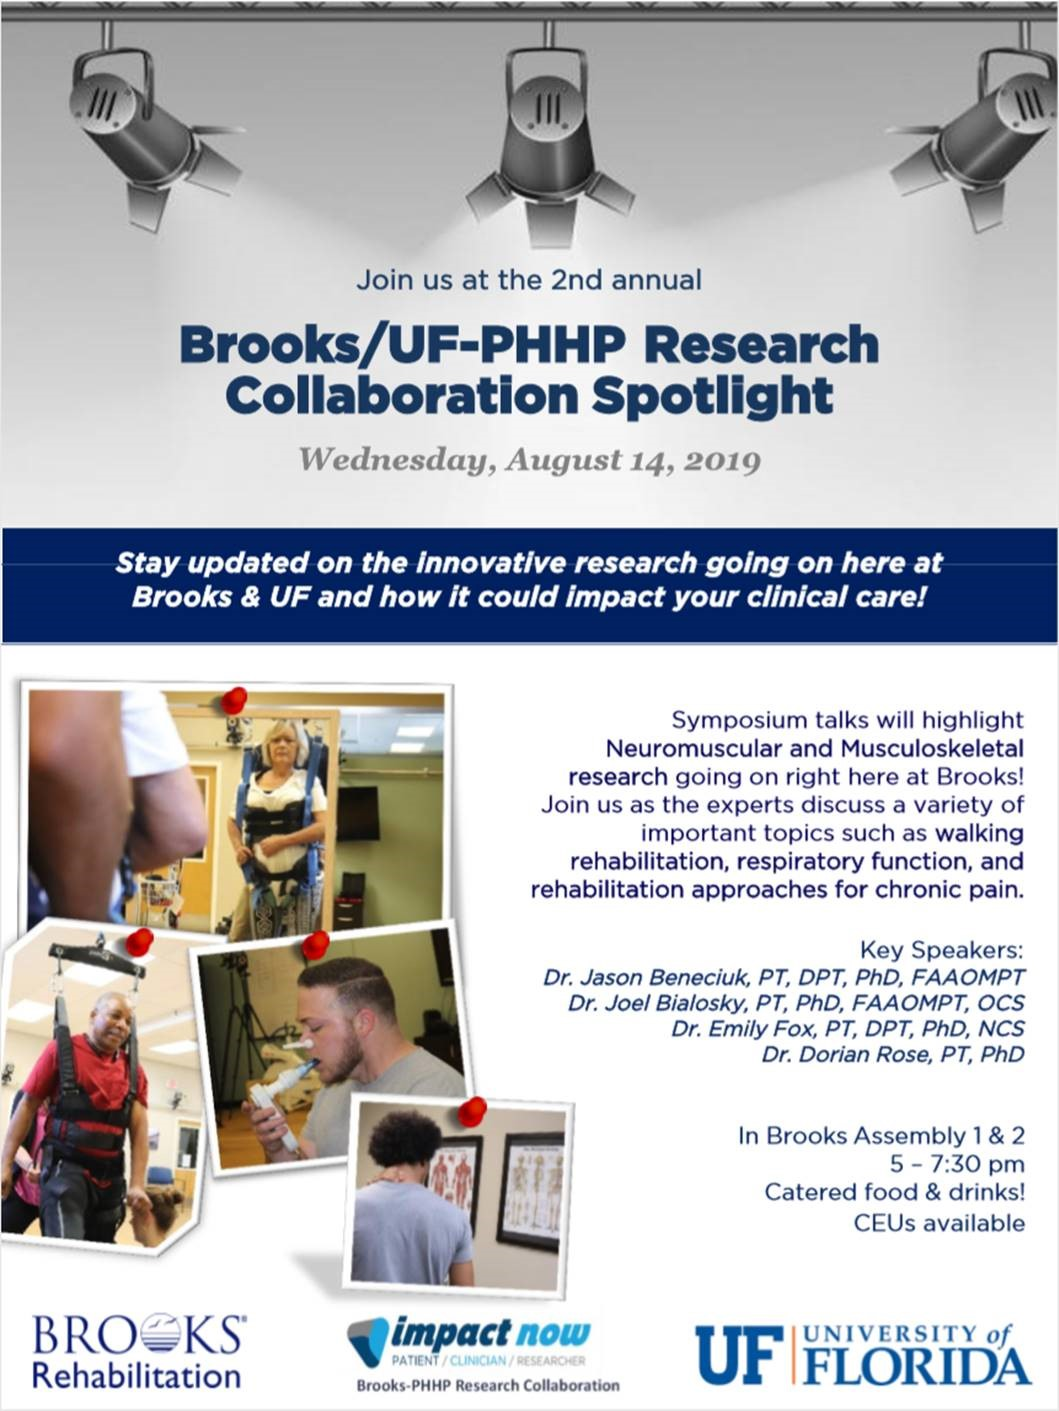 Brooks/UF_PHHP Collaboration Spotlight Flyer